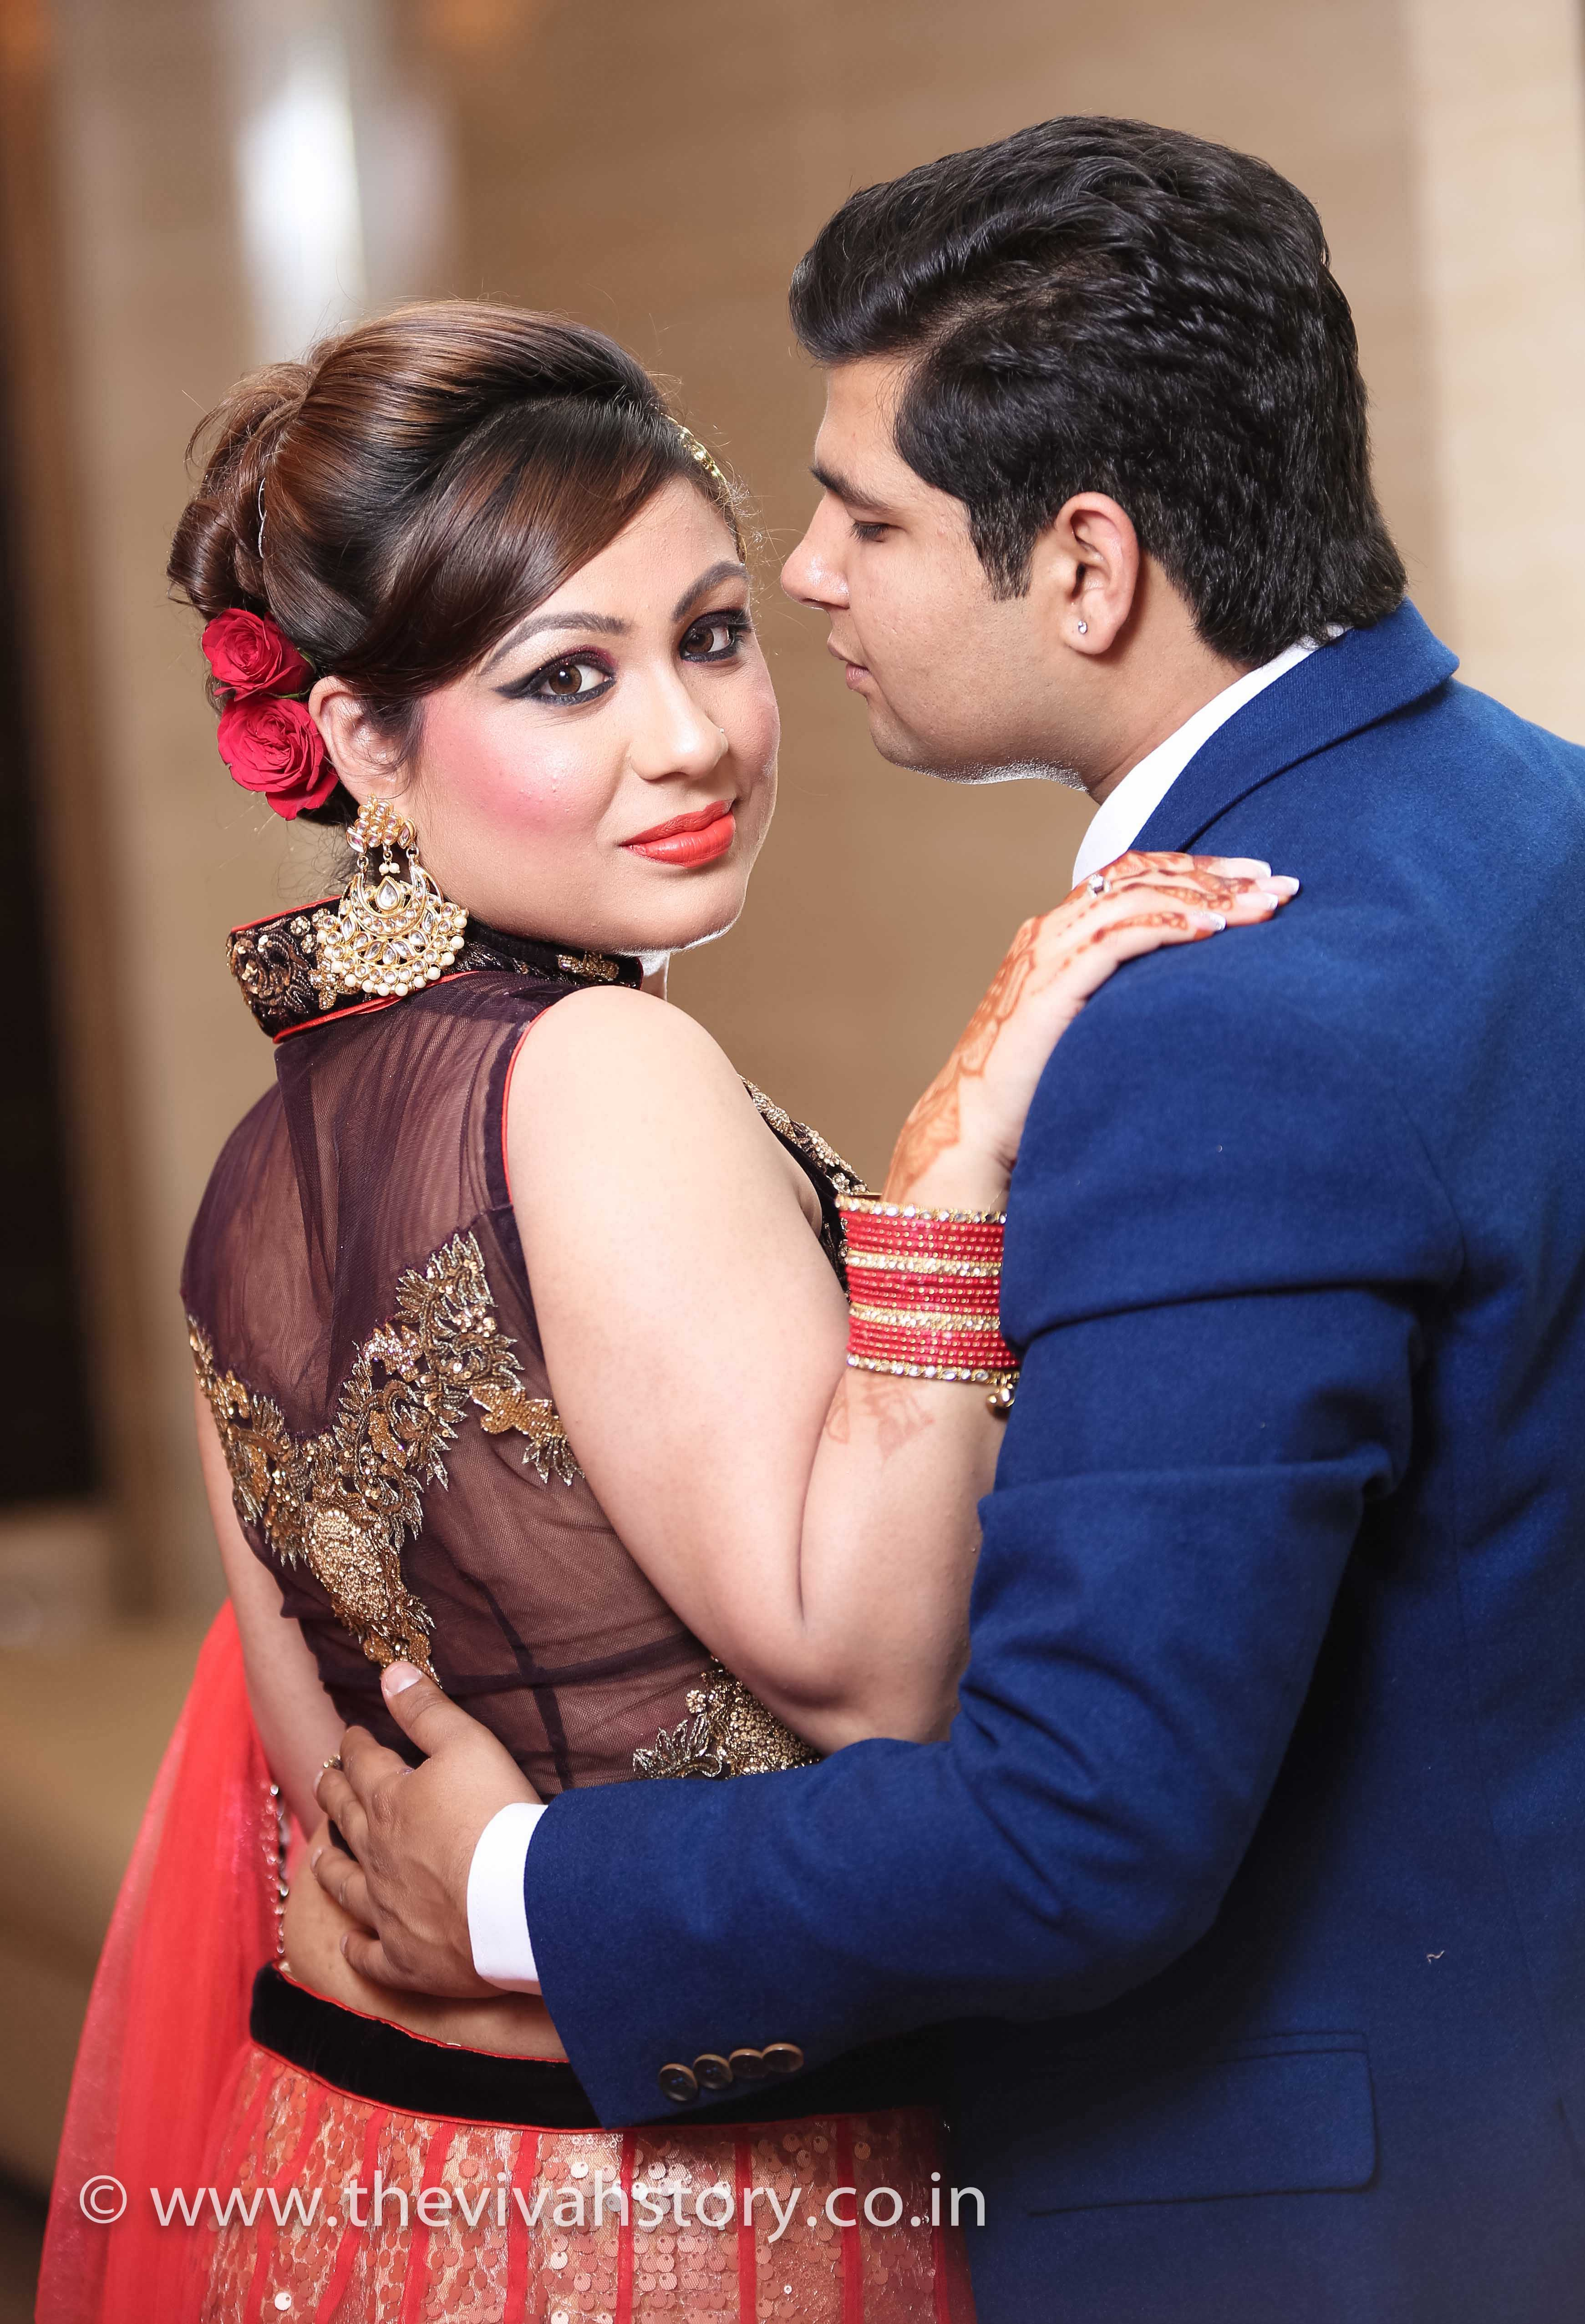 The Vivah Story